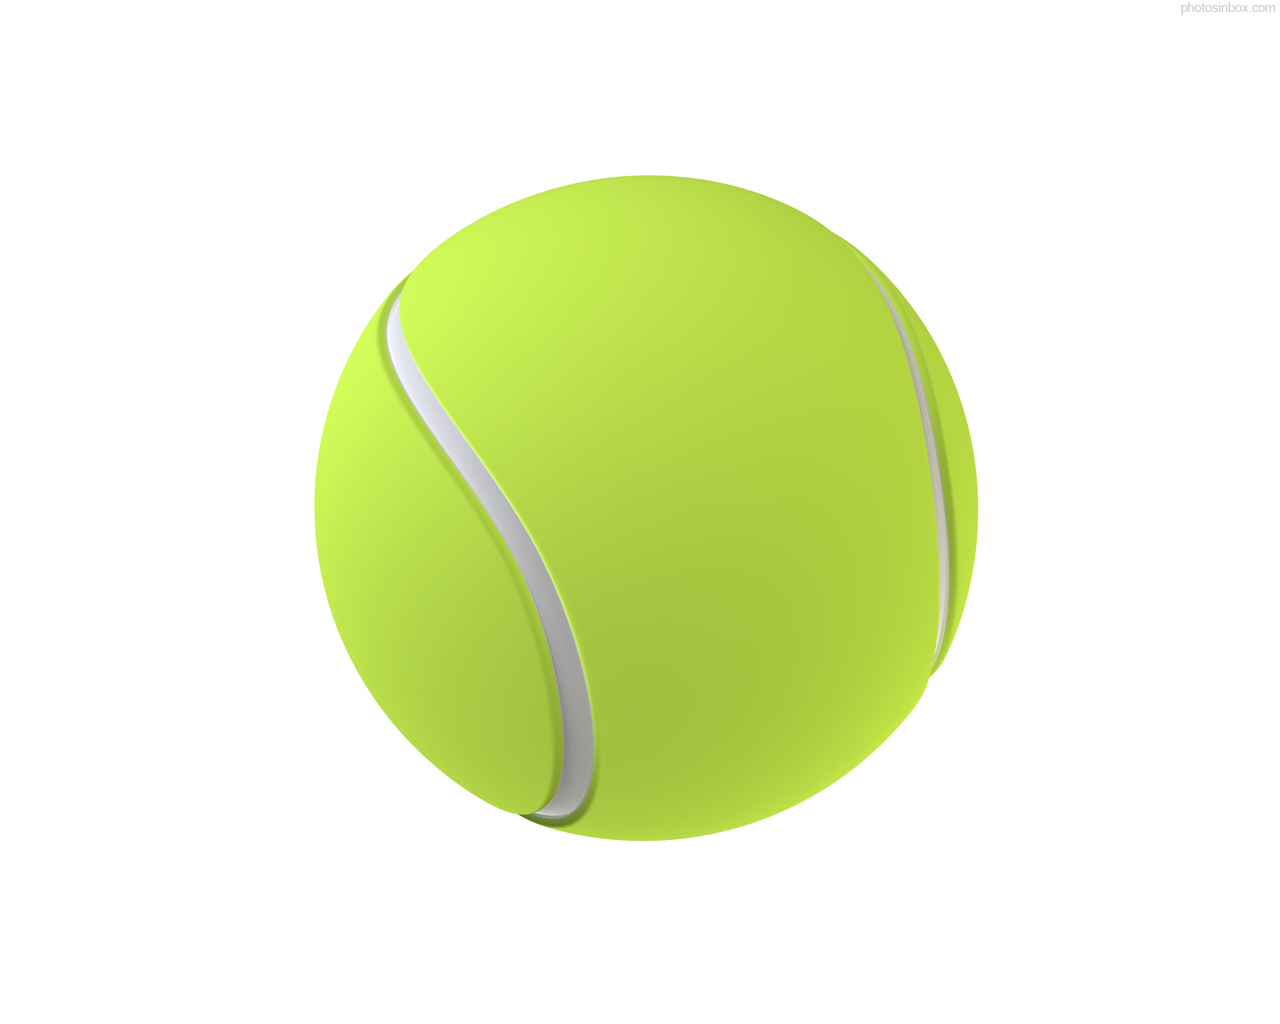 svg black and white download Free cliparts download clip. Tennis ball clipart